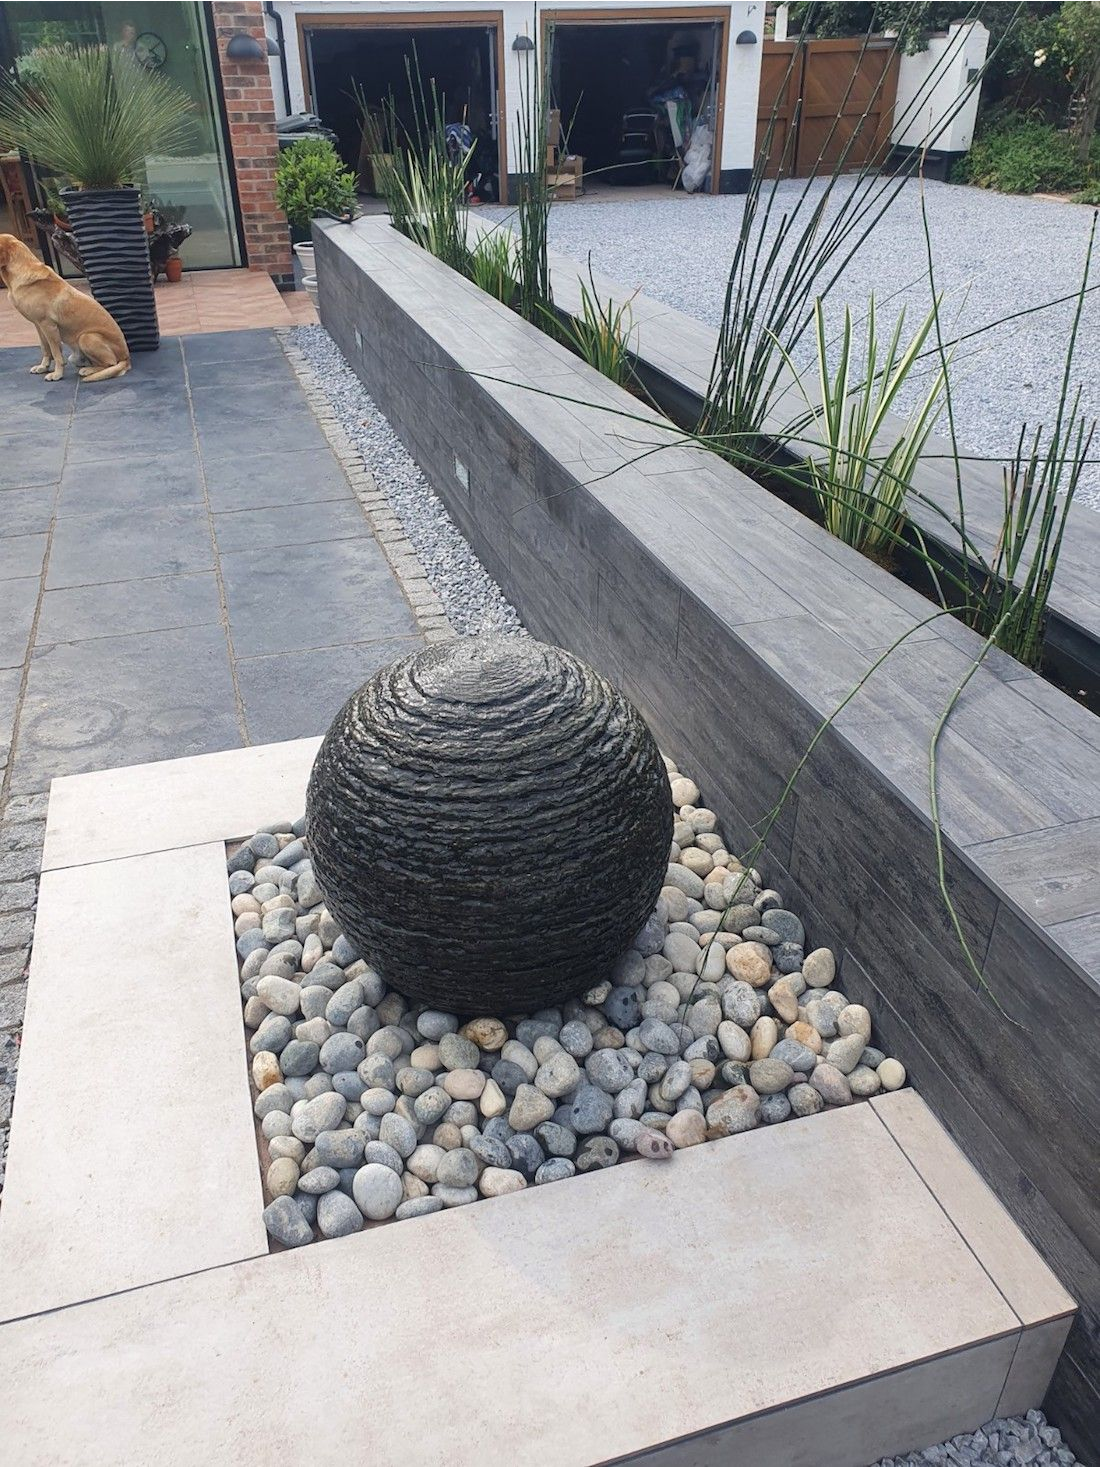 Completed Water Feature with Lighting